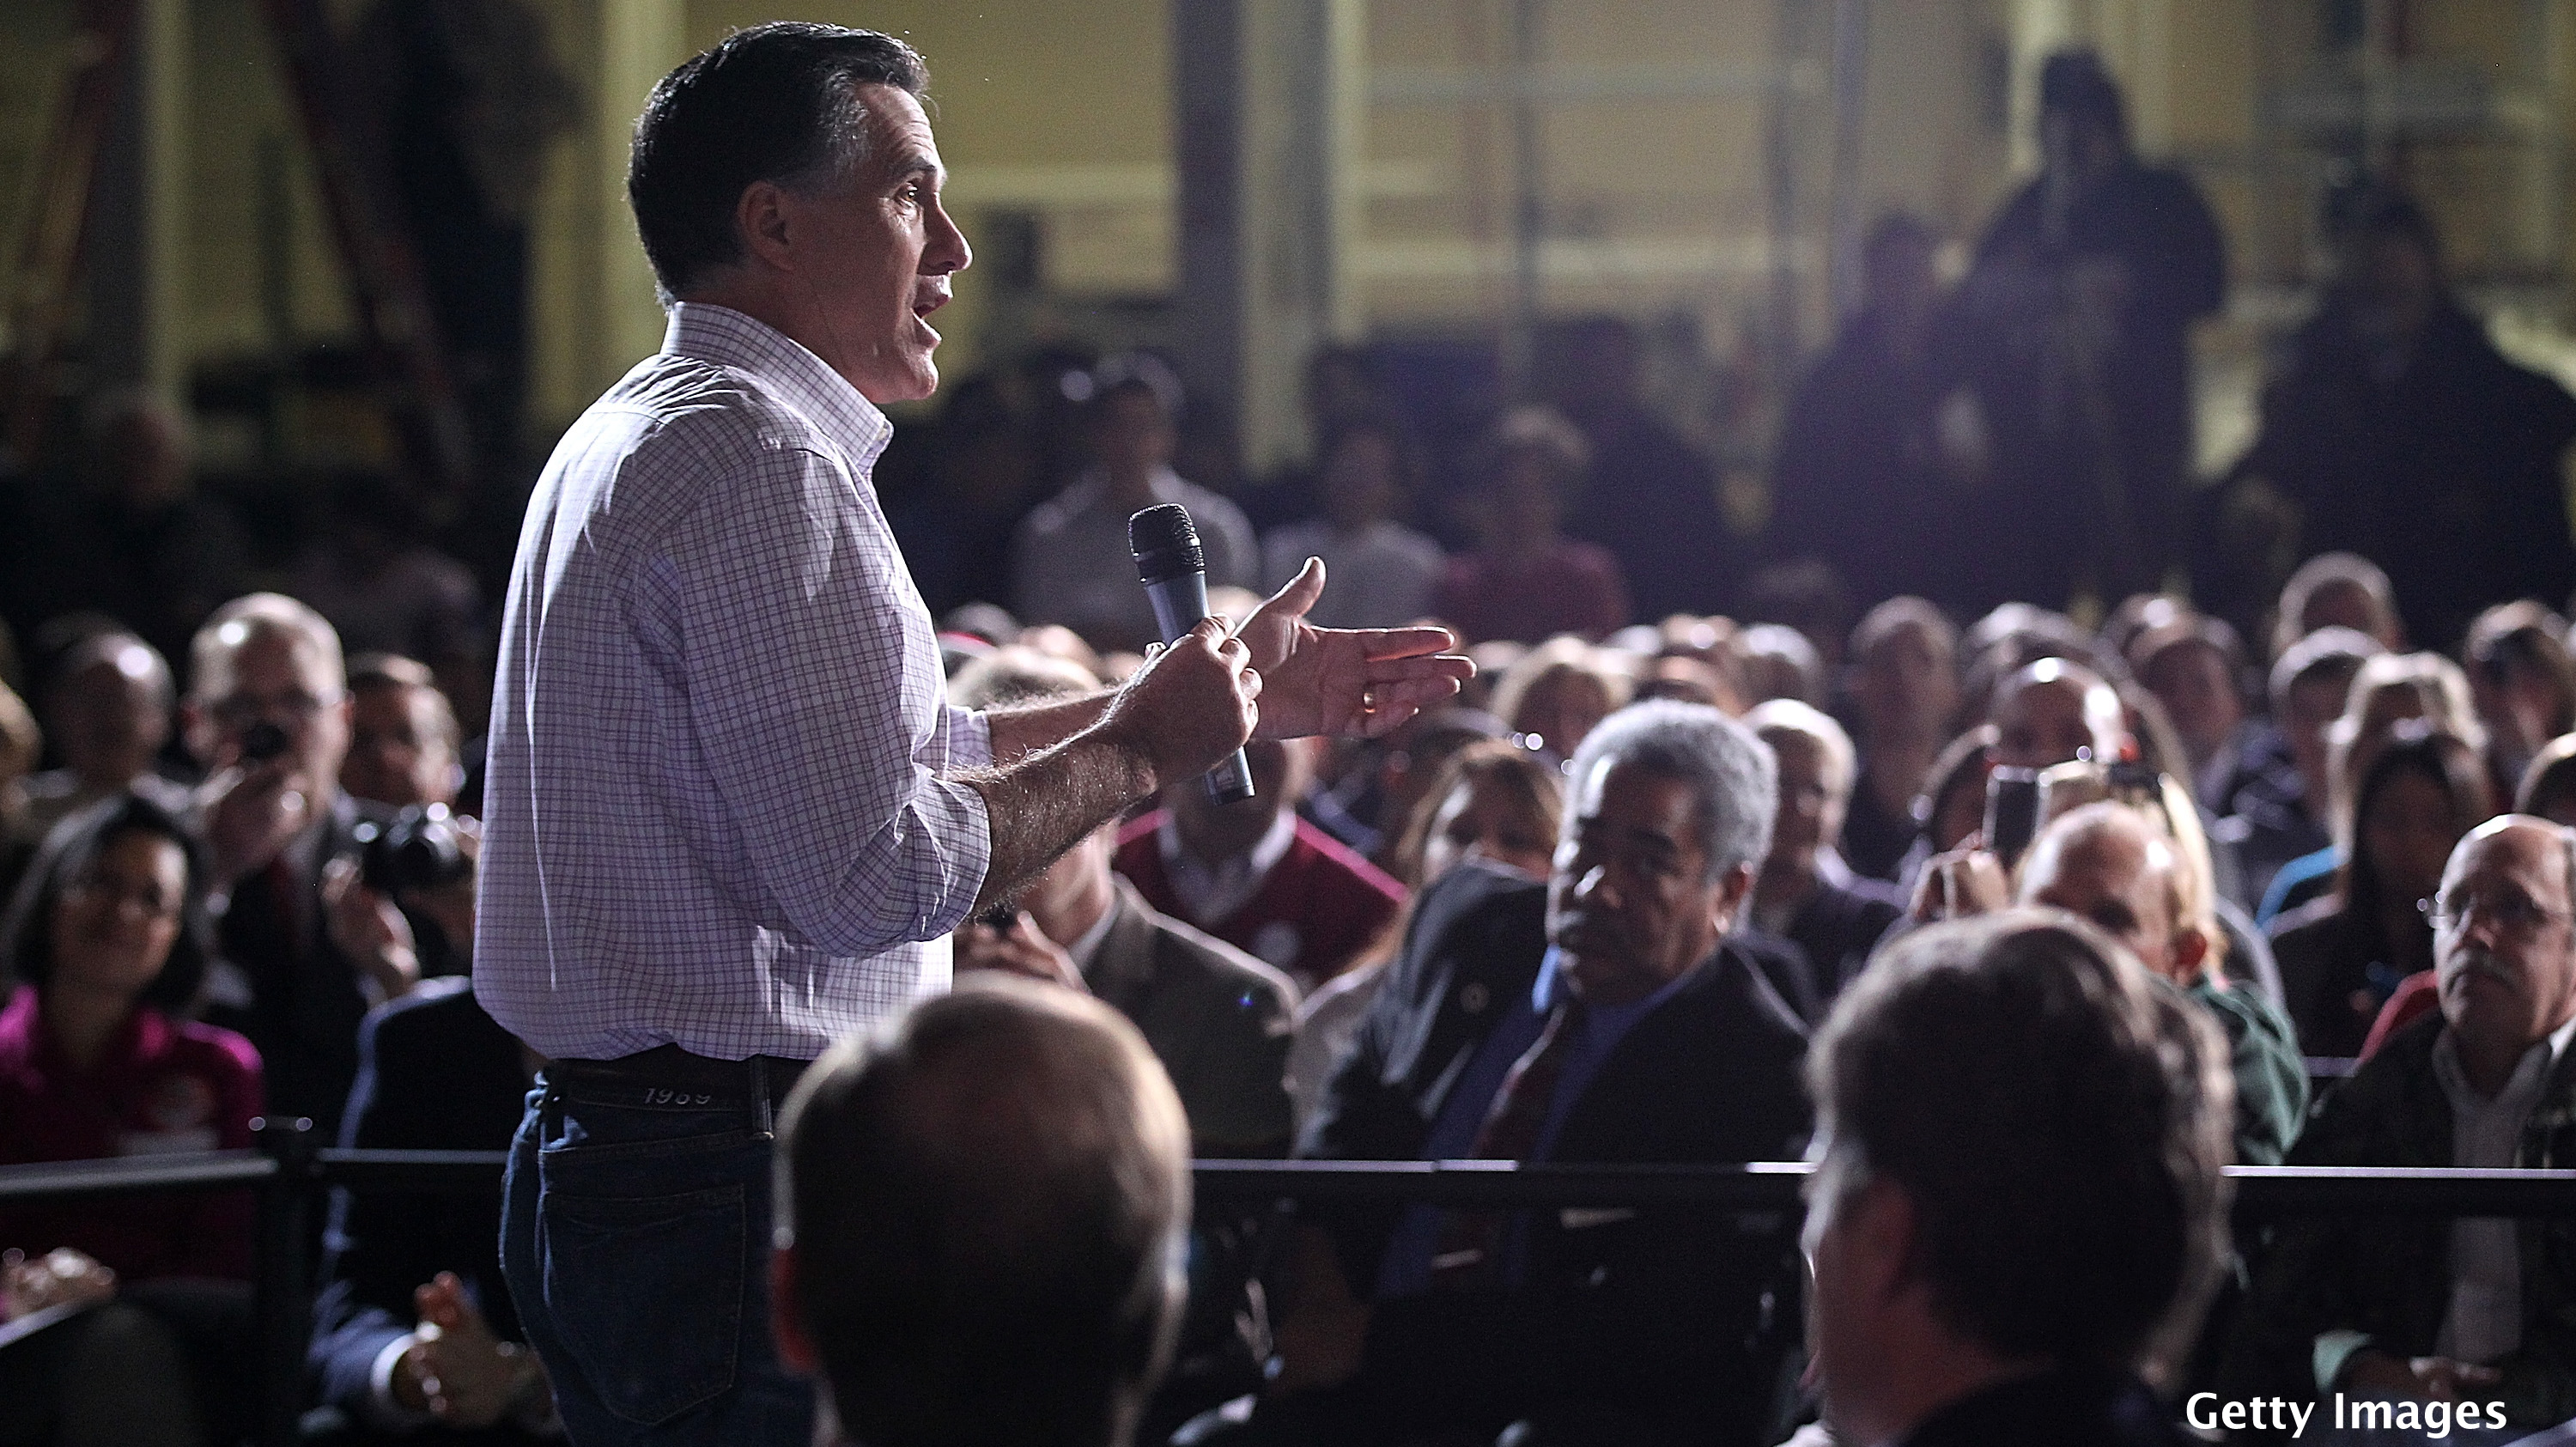 Romney faces another &#039;must-win&#039; state in Illinois primary